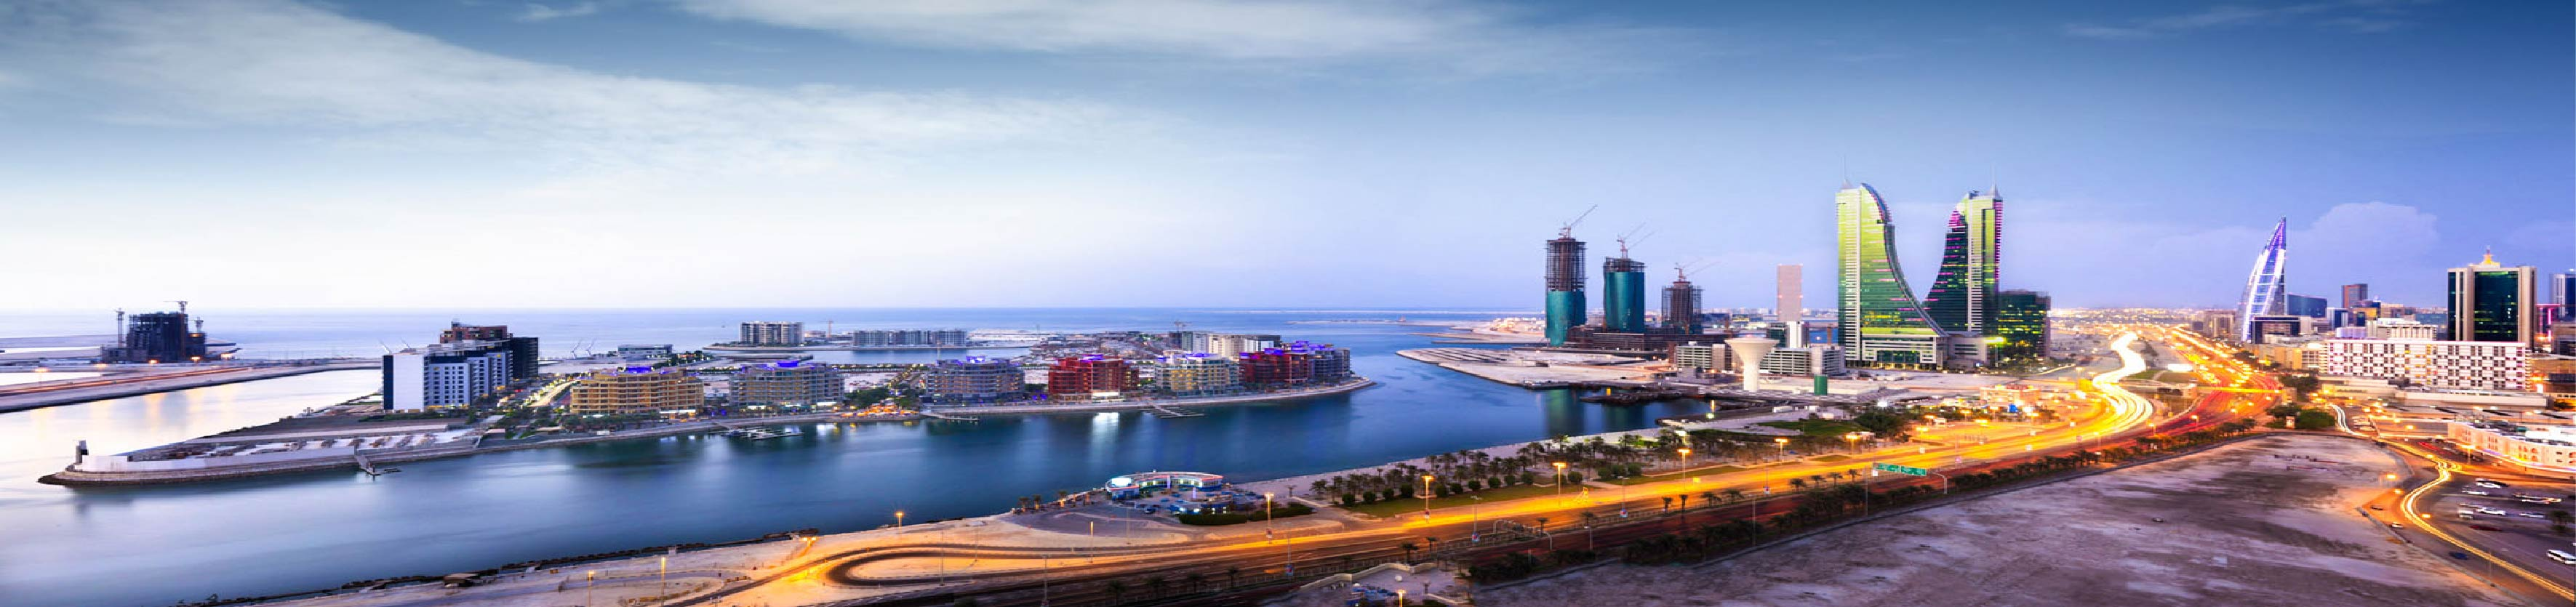 Expatriates Bahrain: where can expats buy property in Bahrain?